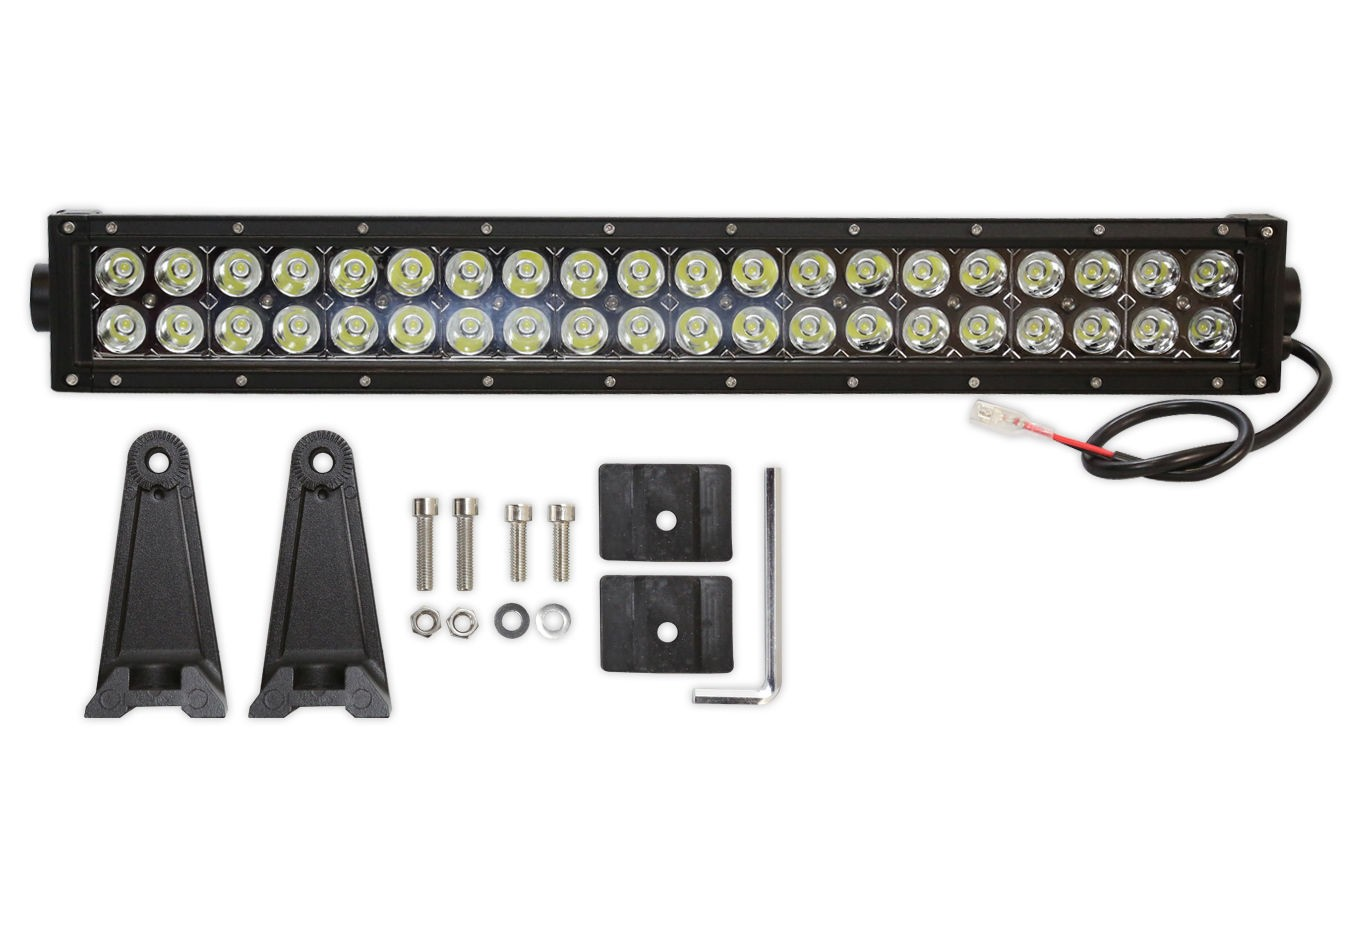 "22"" Inch 120W LED Spot Light Bar For a SUV ATV / Truck / Boat / Machine With wire harness"